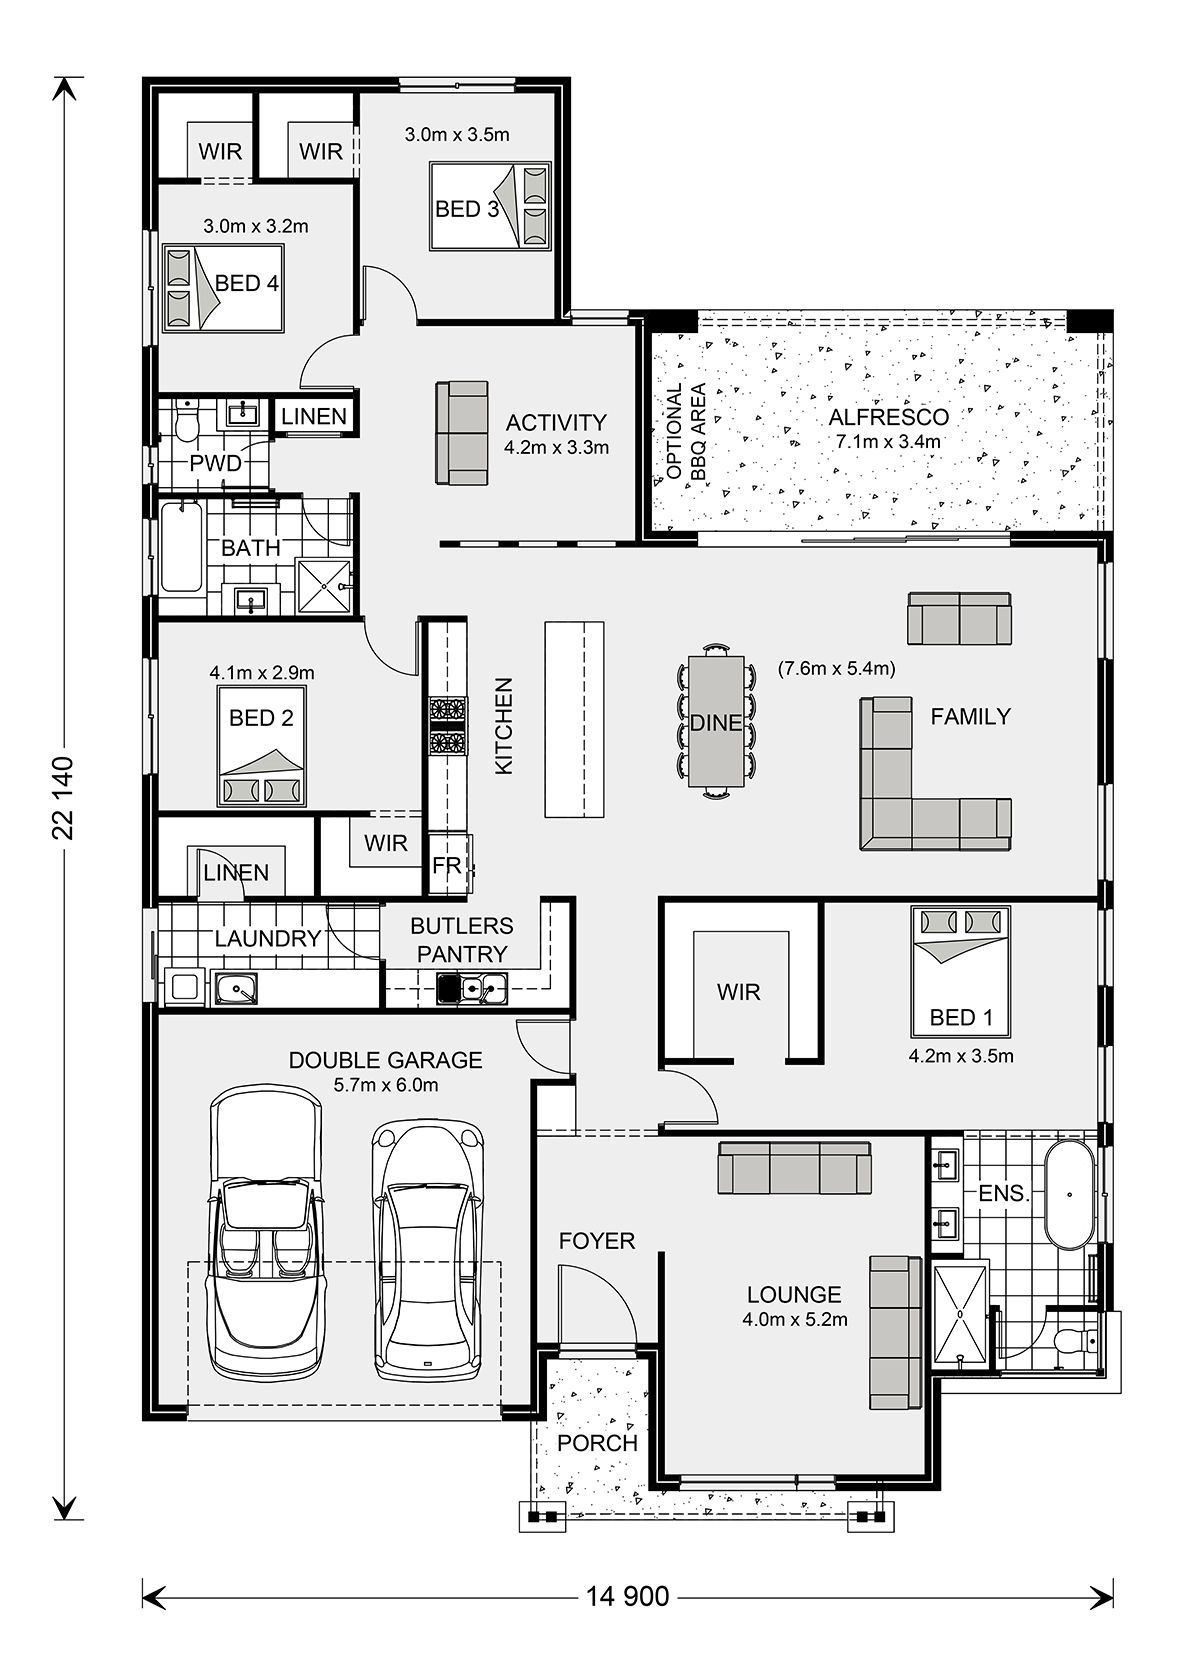 floor plan floorplans pinterest maison plan maison